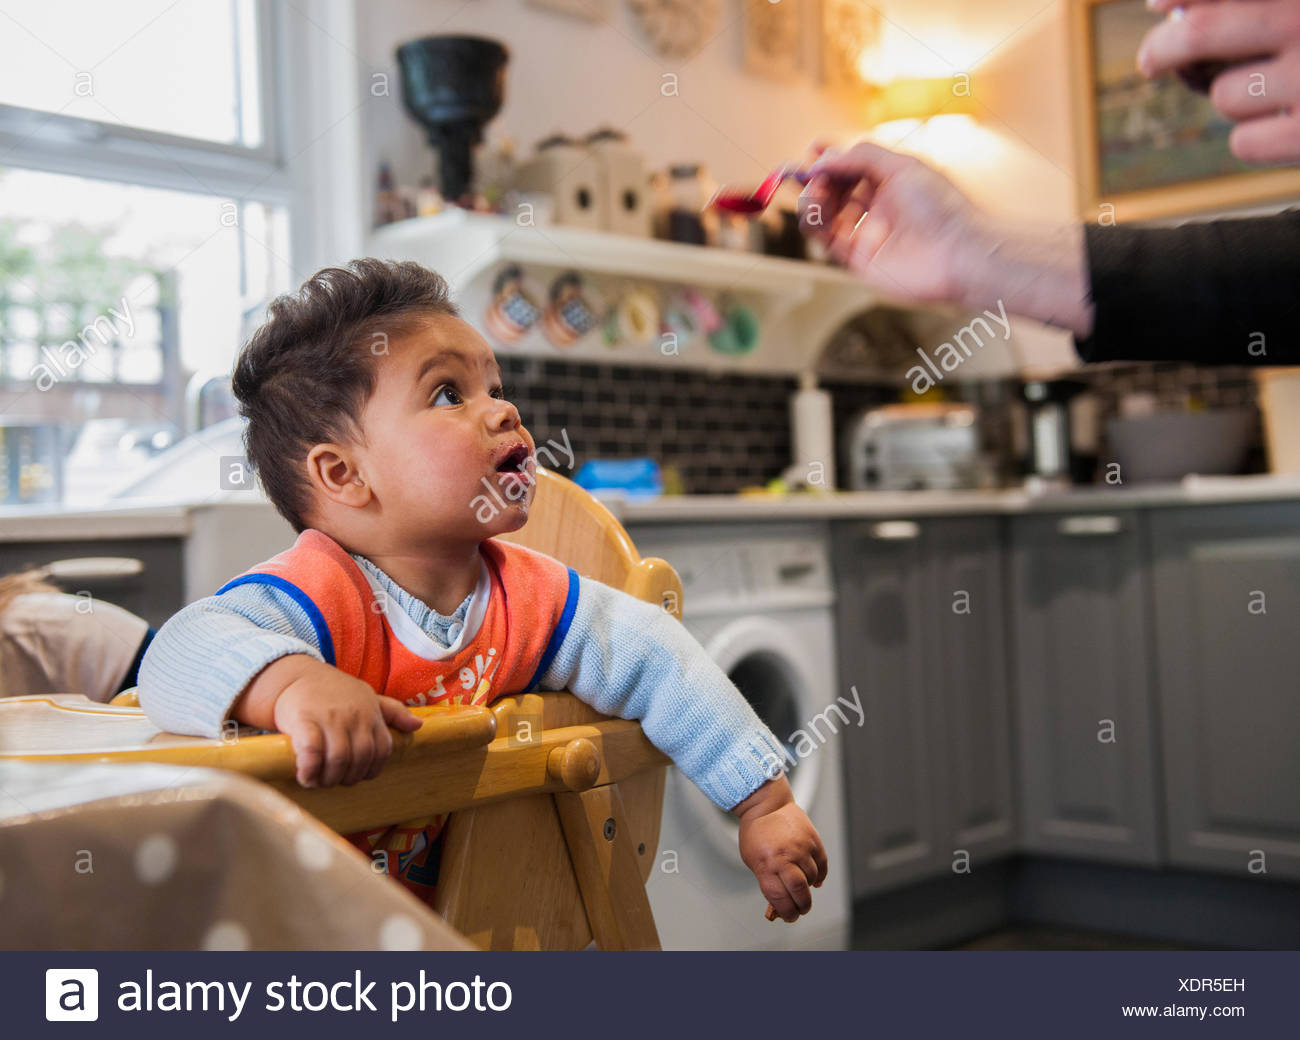 Baby boy in highchair being fed - Stock Image